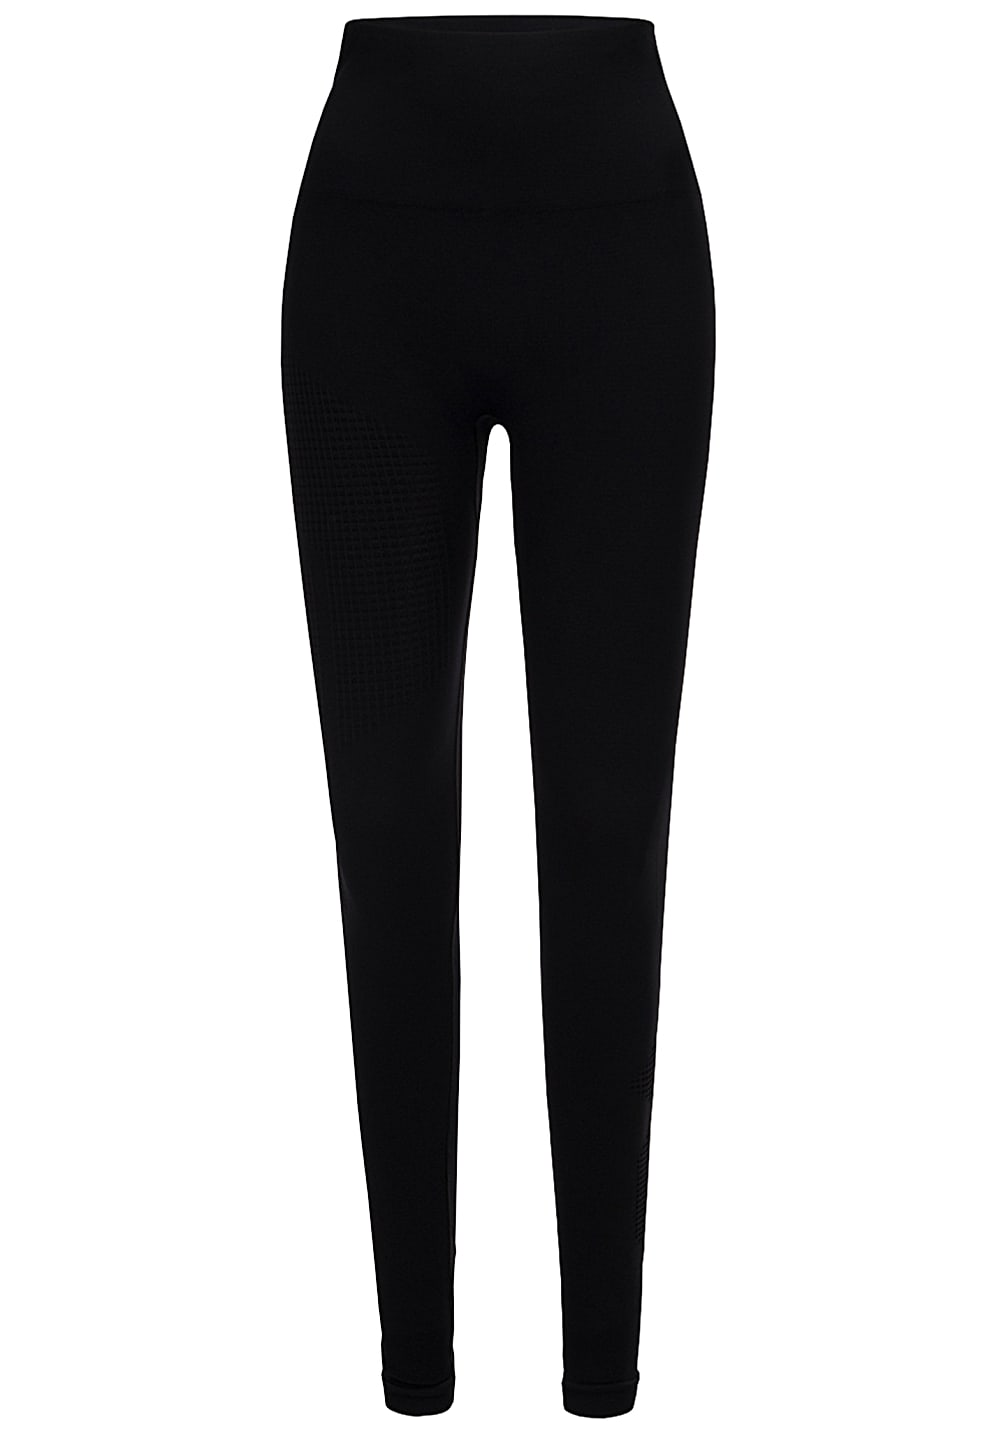 PEAK PERFORMANCE Yorba Tight - Funktionsunterwäsche für Damen Schwarz